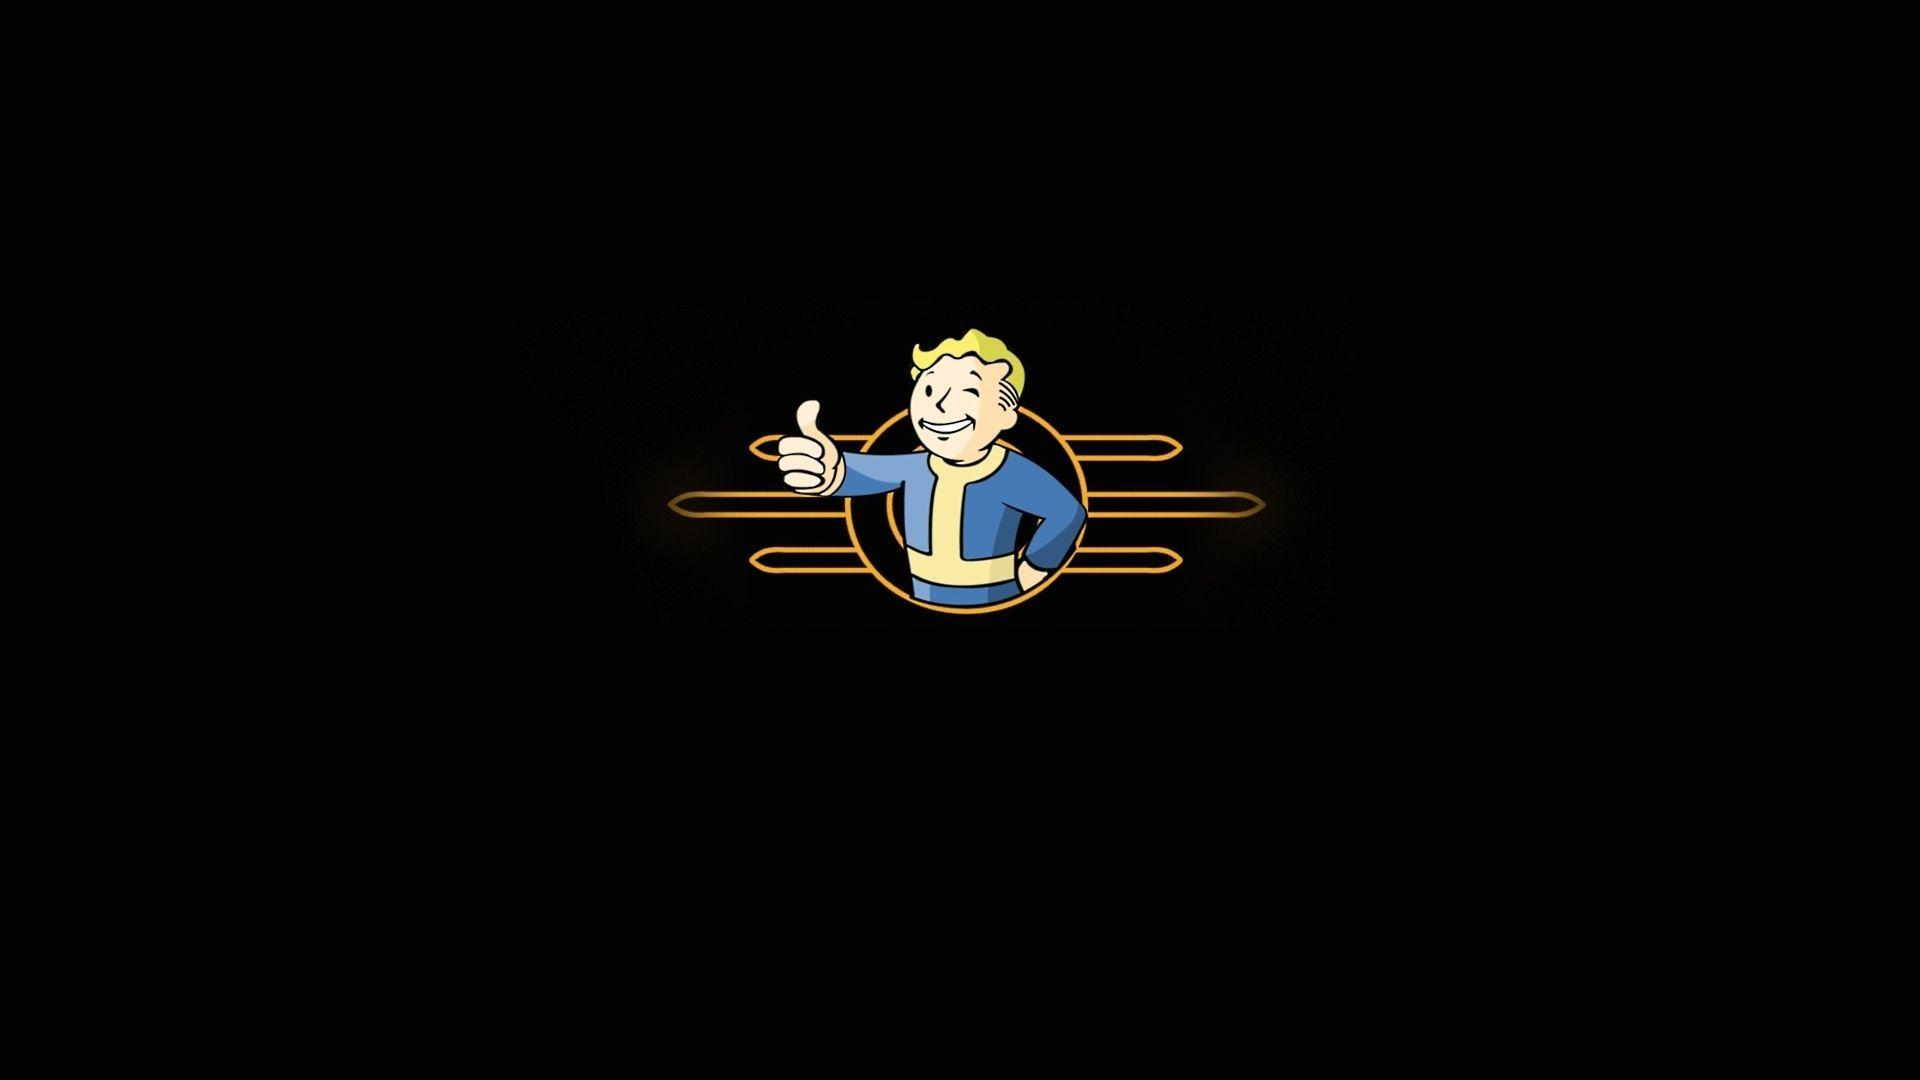 Images For > Fallout Vault Boy Perks